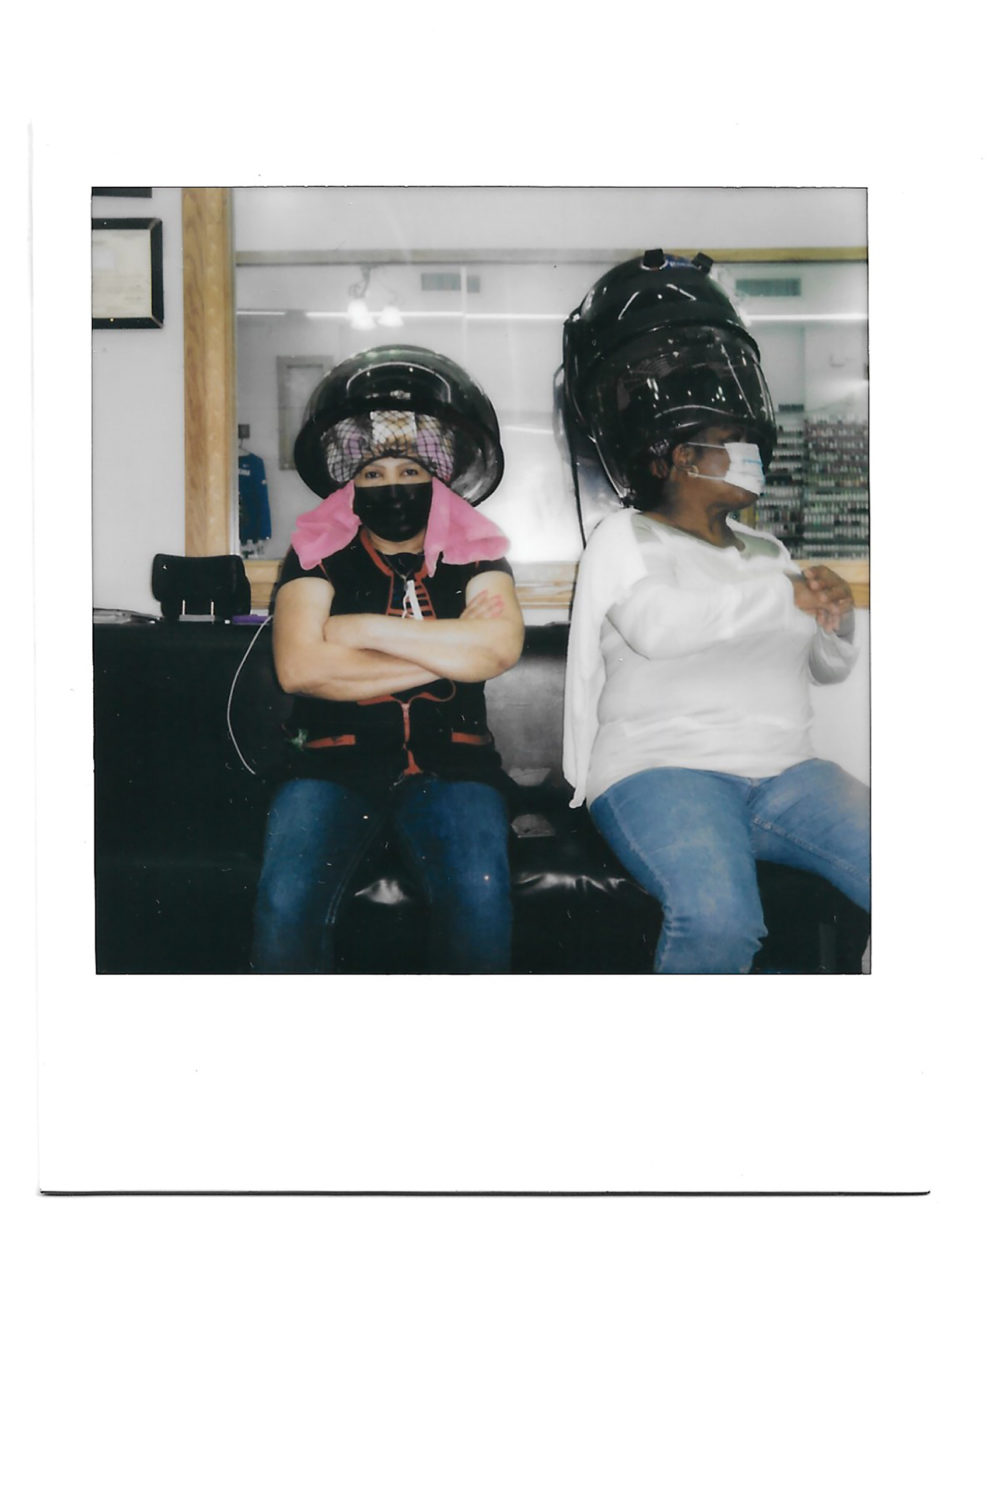 Two people sit in a salon underneath a hair dryer